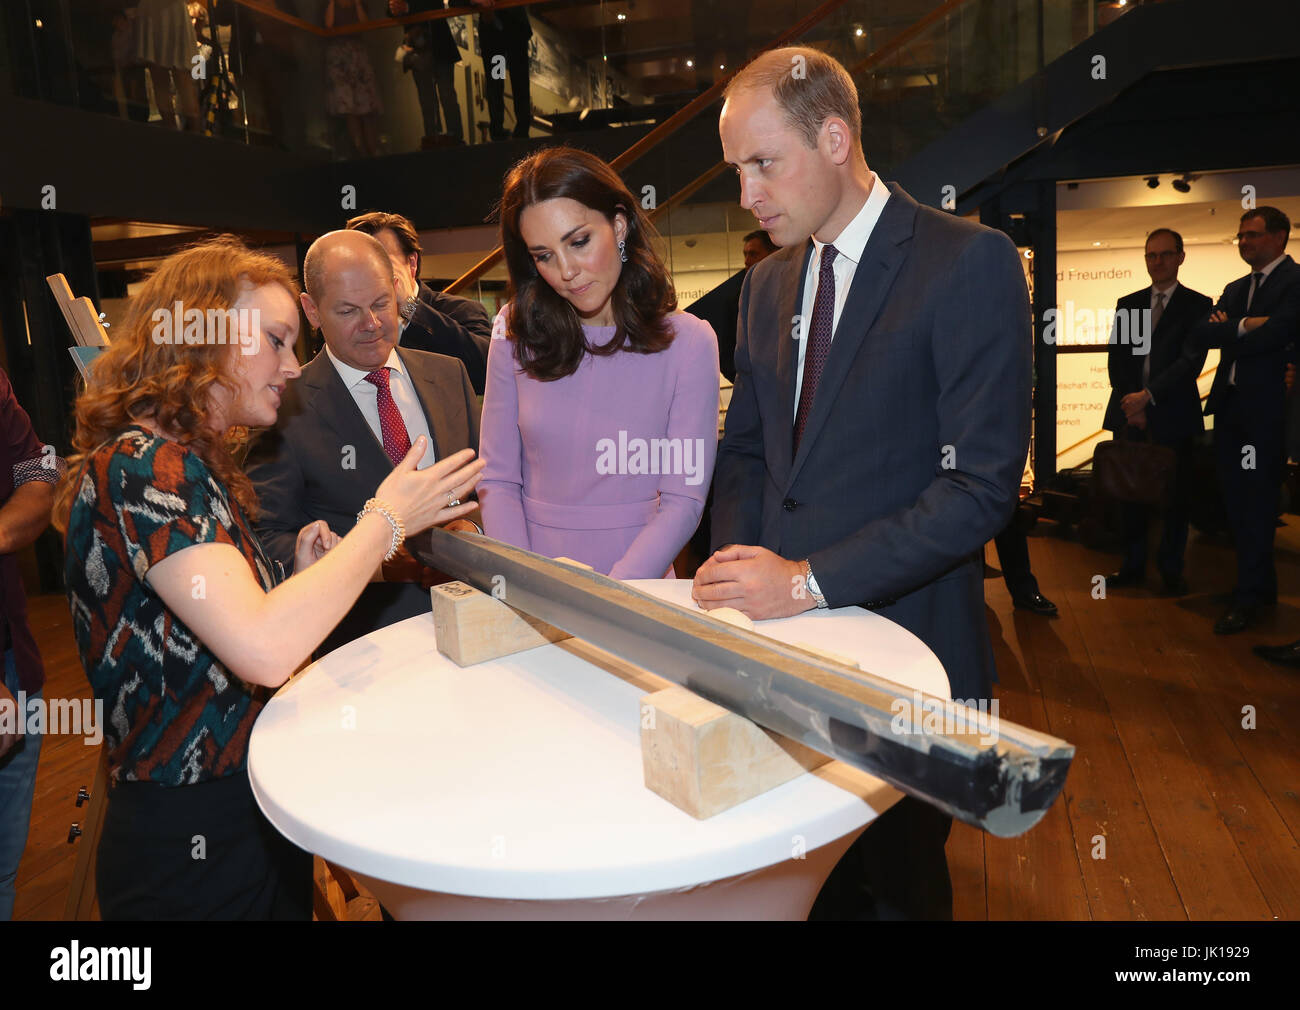 The Duke and Duchess of Cambridge are shown a core sample from under the sea during a visit to the Maritime Museum - Stock Image